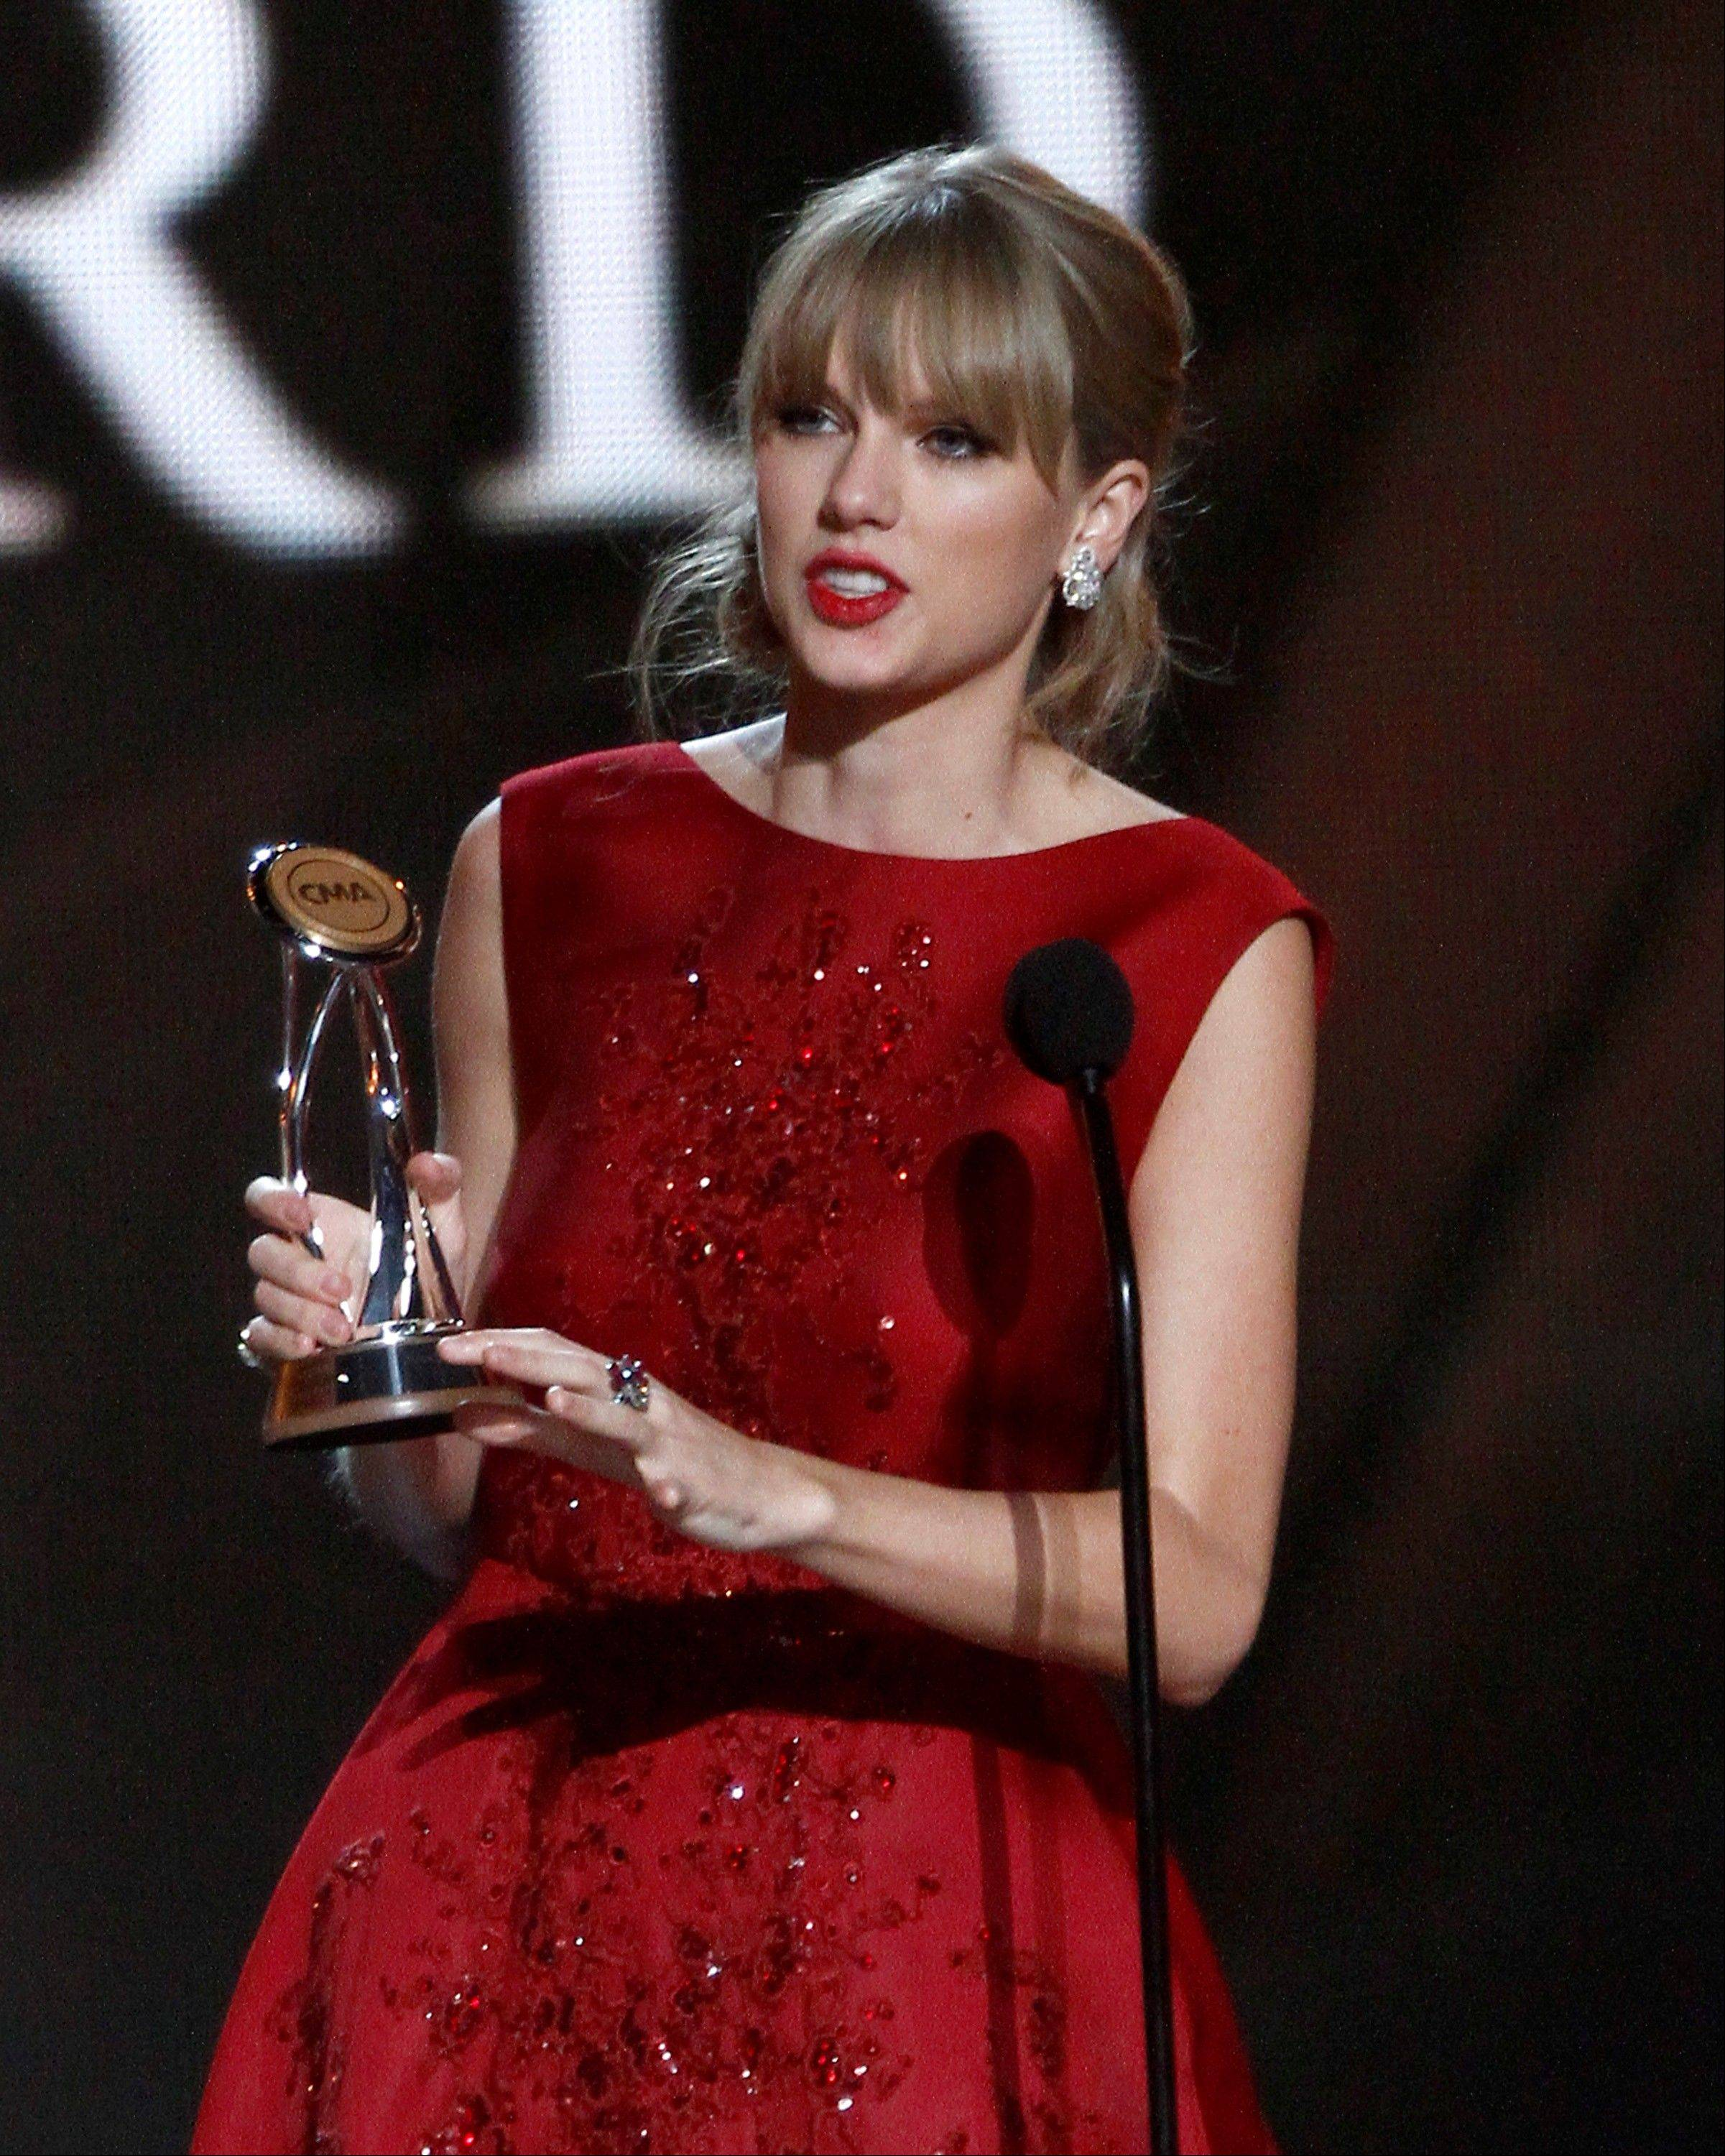 Taylor Swift accepts the Pinnacle award